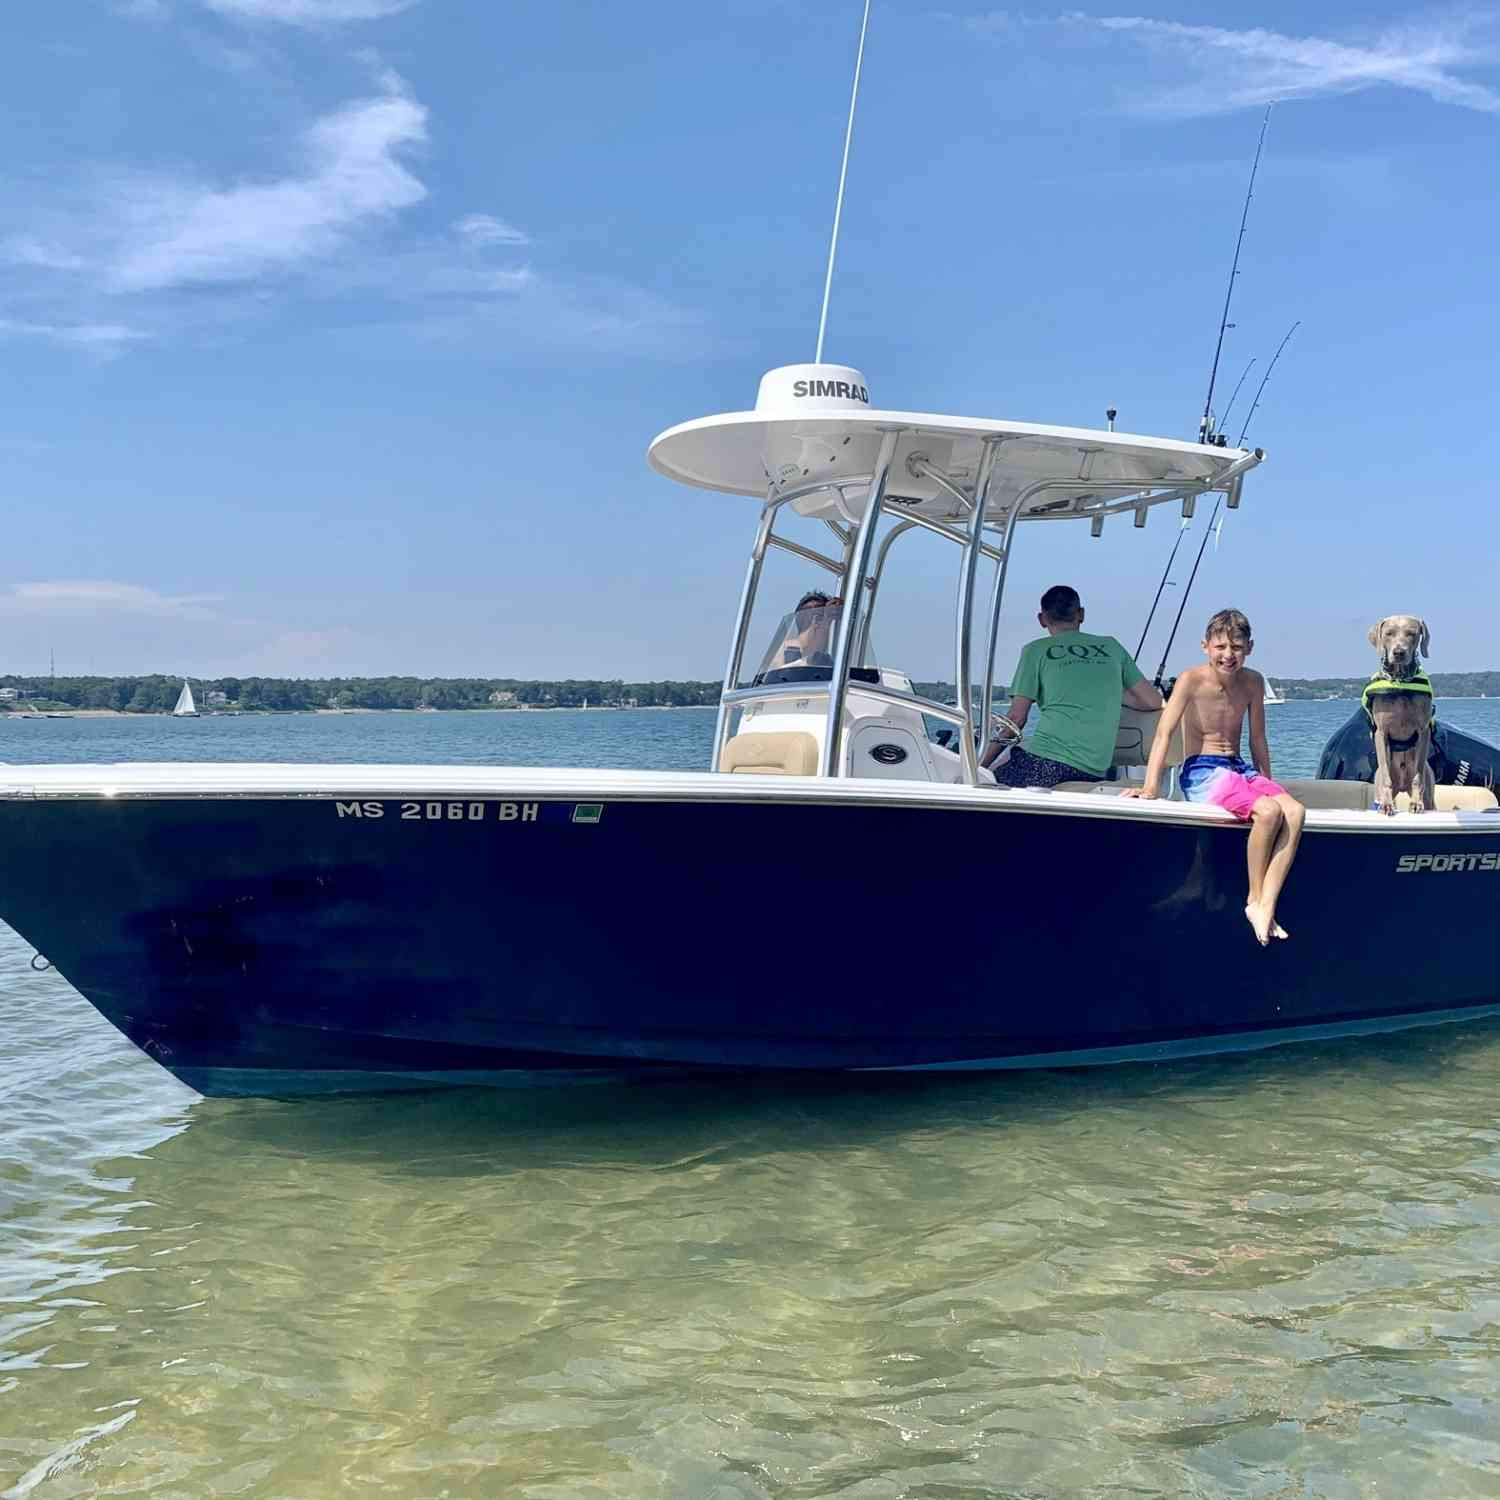 Title: Baydreamin' - On board their Sportsman Heritage 231 Center Console - Location: Pleasant Bay, Chatham, MA. Participating in the Photo Contest #SportsmanSeptember2020